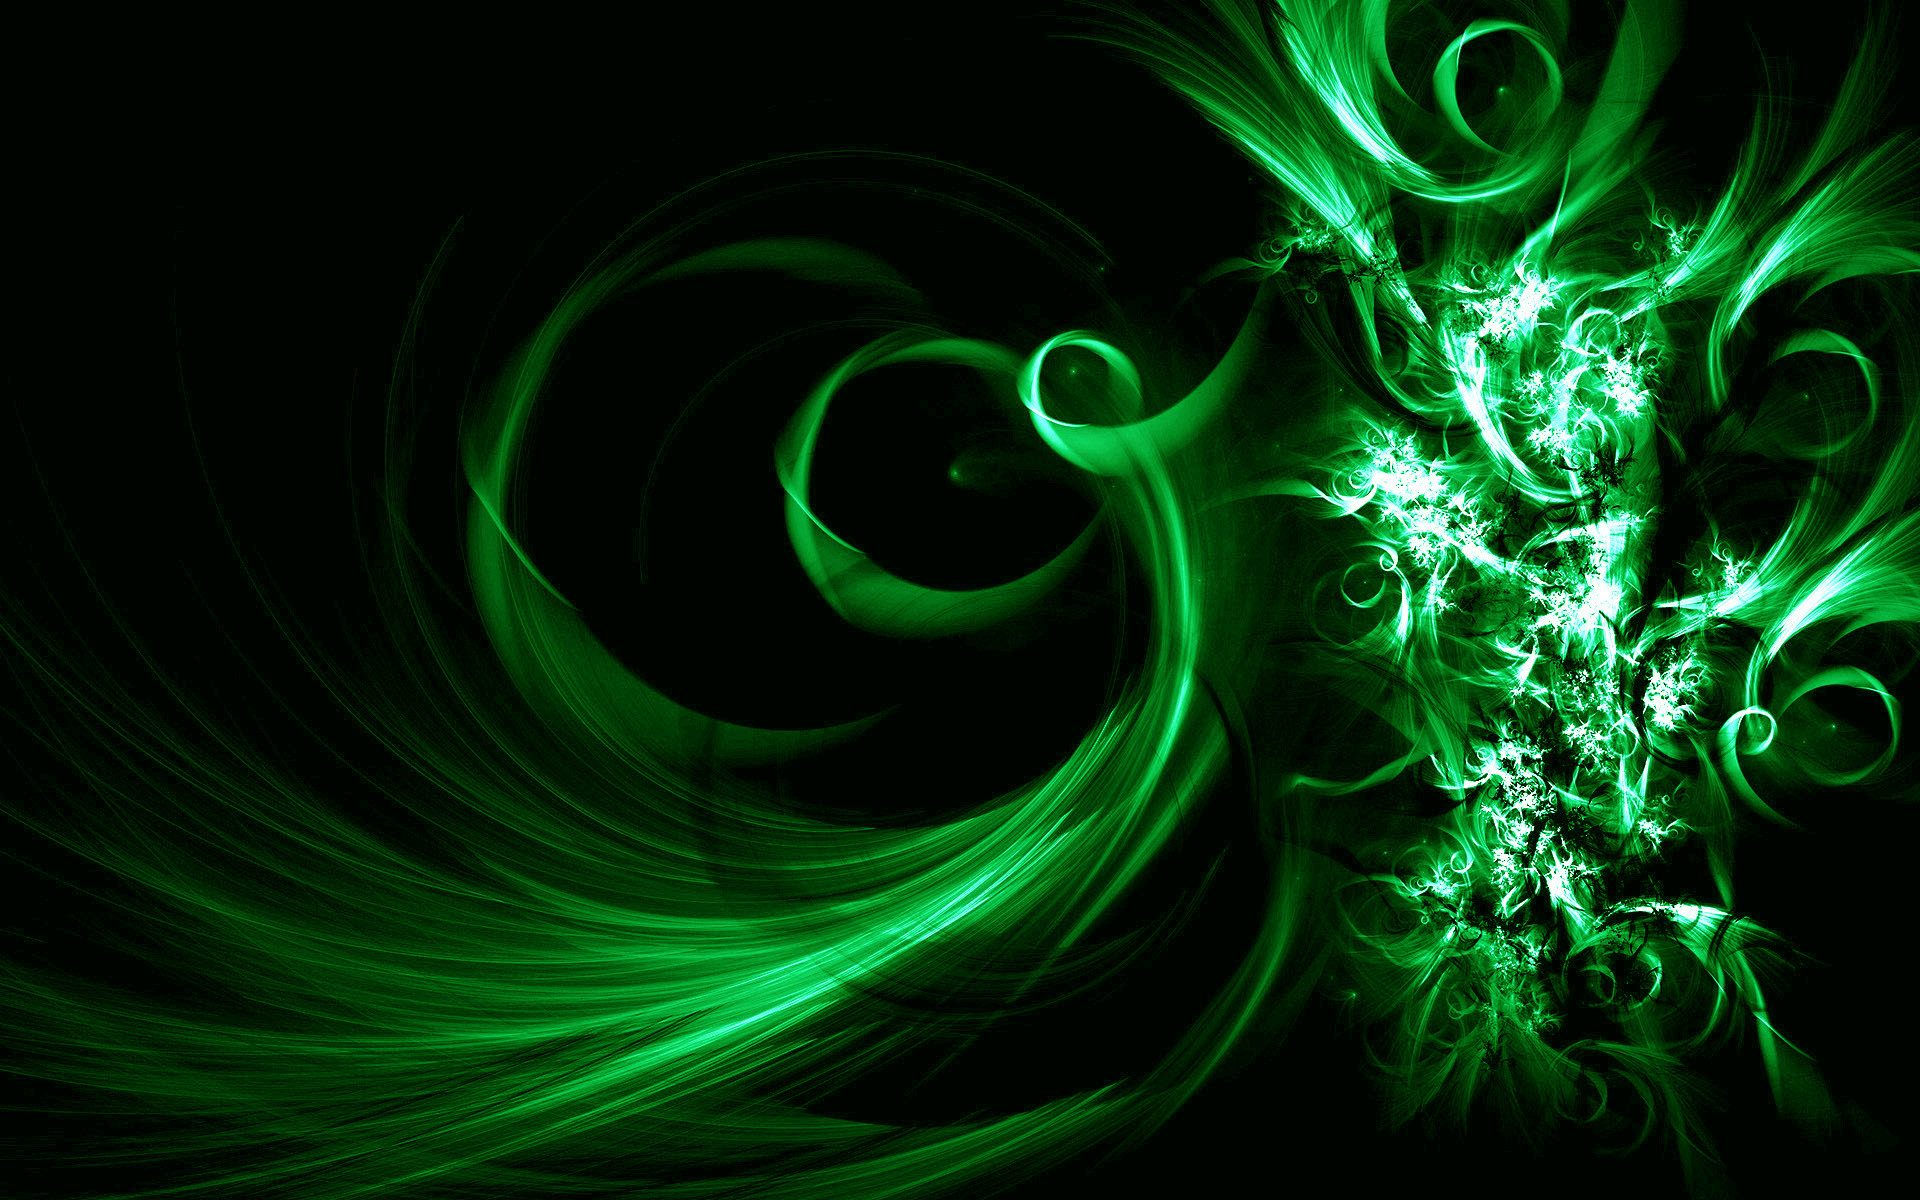 Best Abstract Wallpapers For Desktop 60 Images